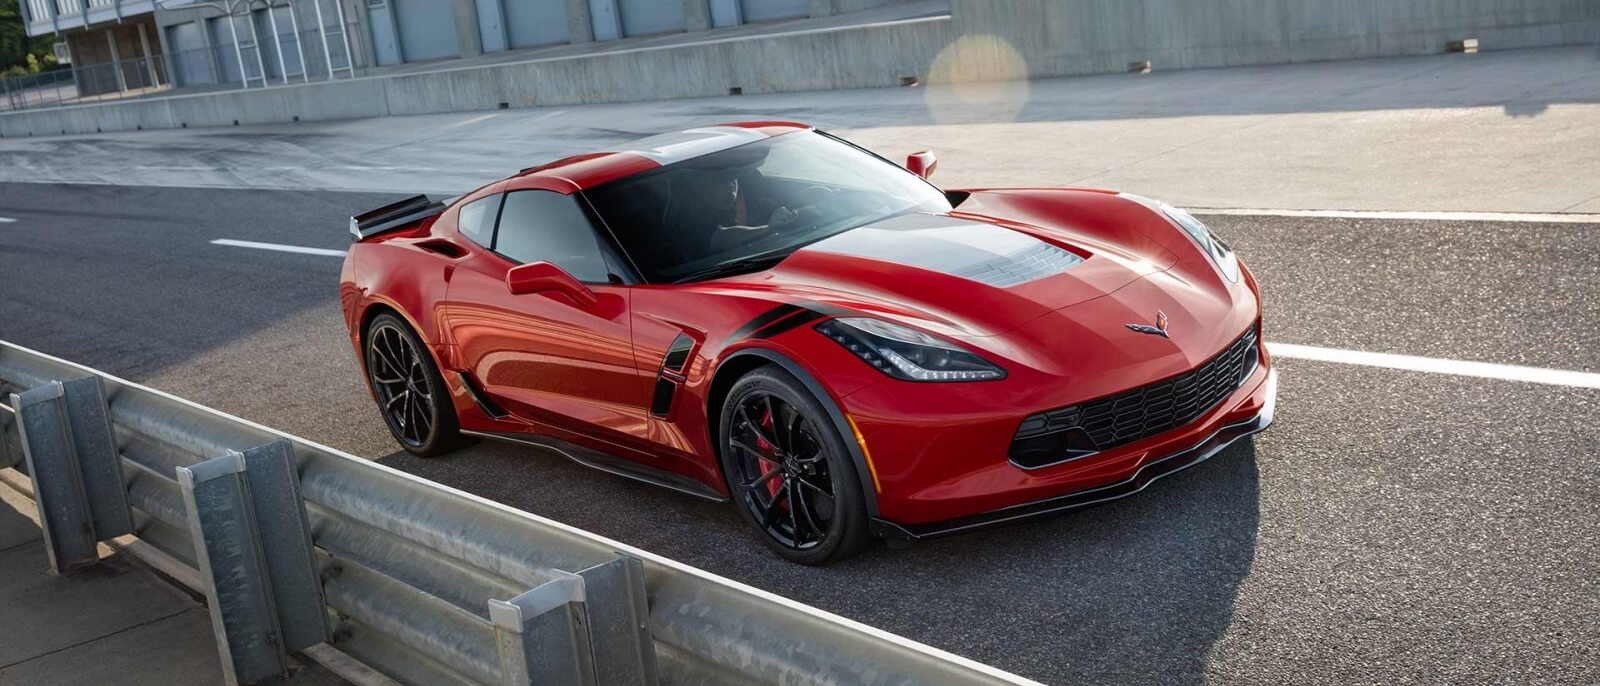 2017 Chevrolet Corvette Grand Sport red exterior model